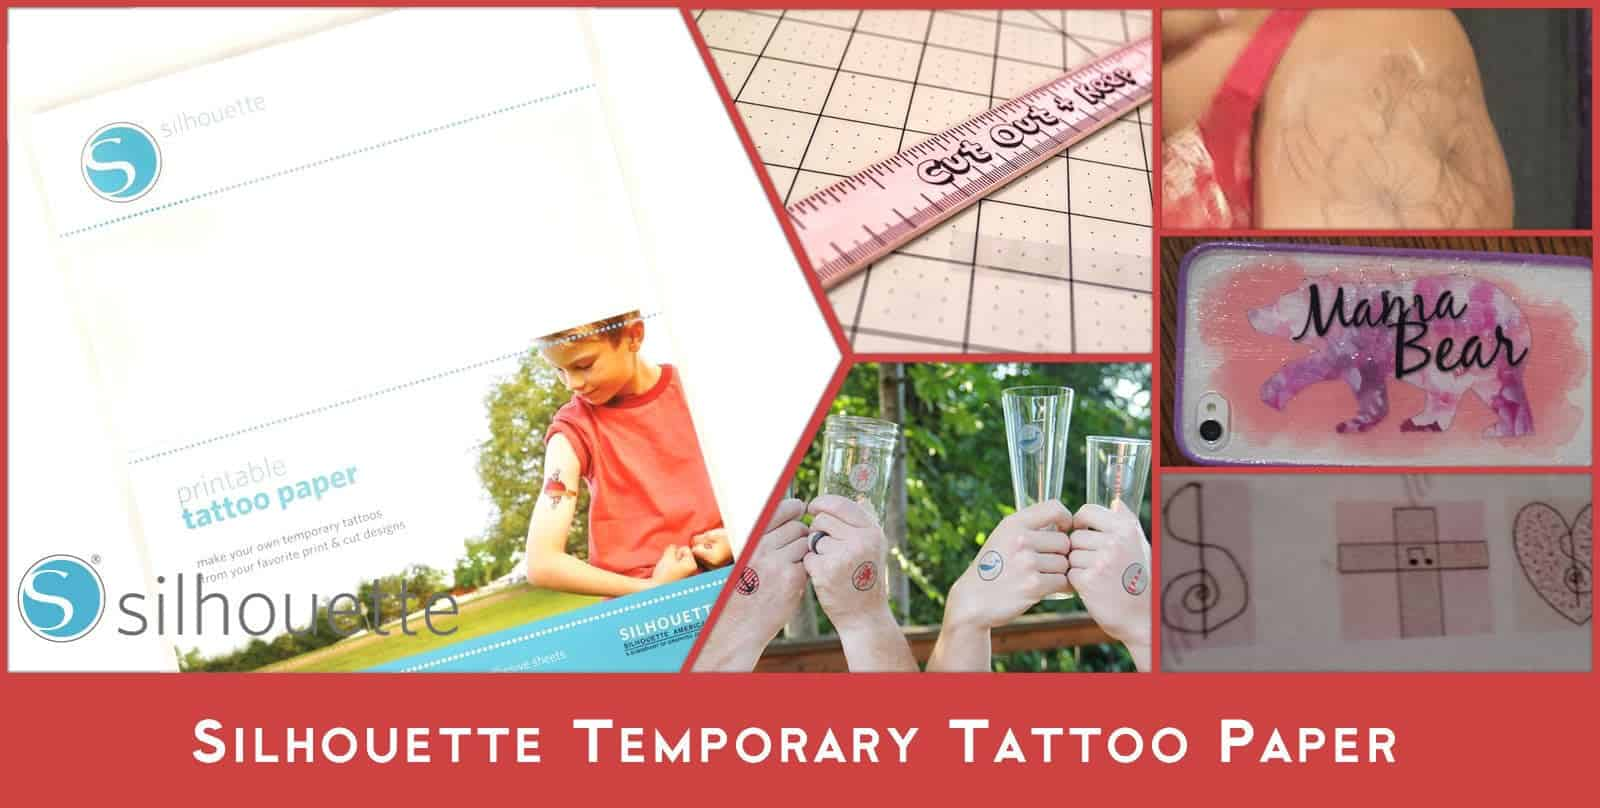 Vinyl cutter temporary tattoo